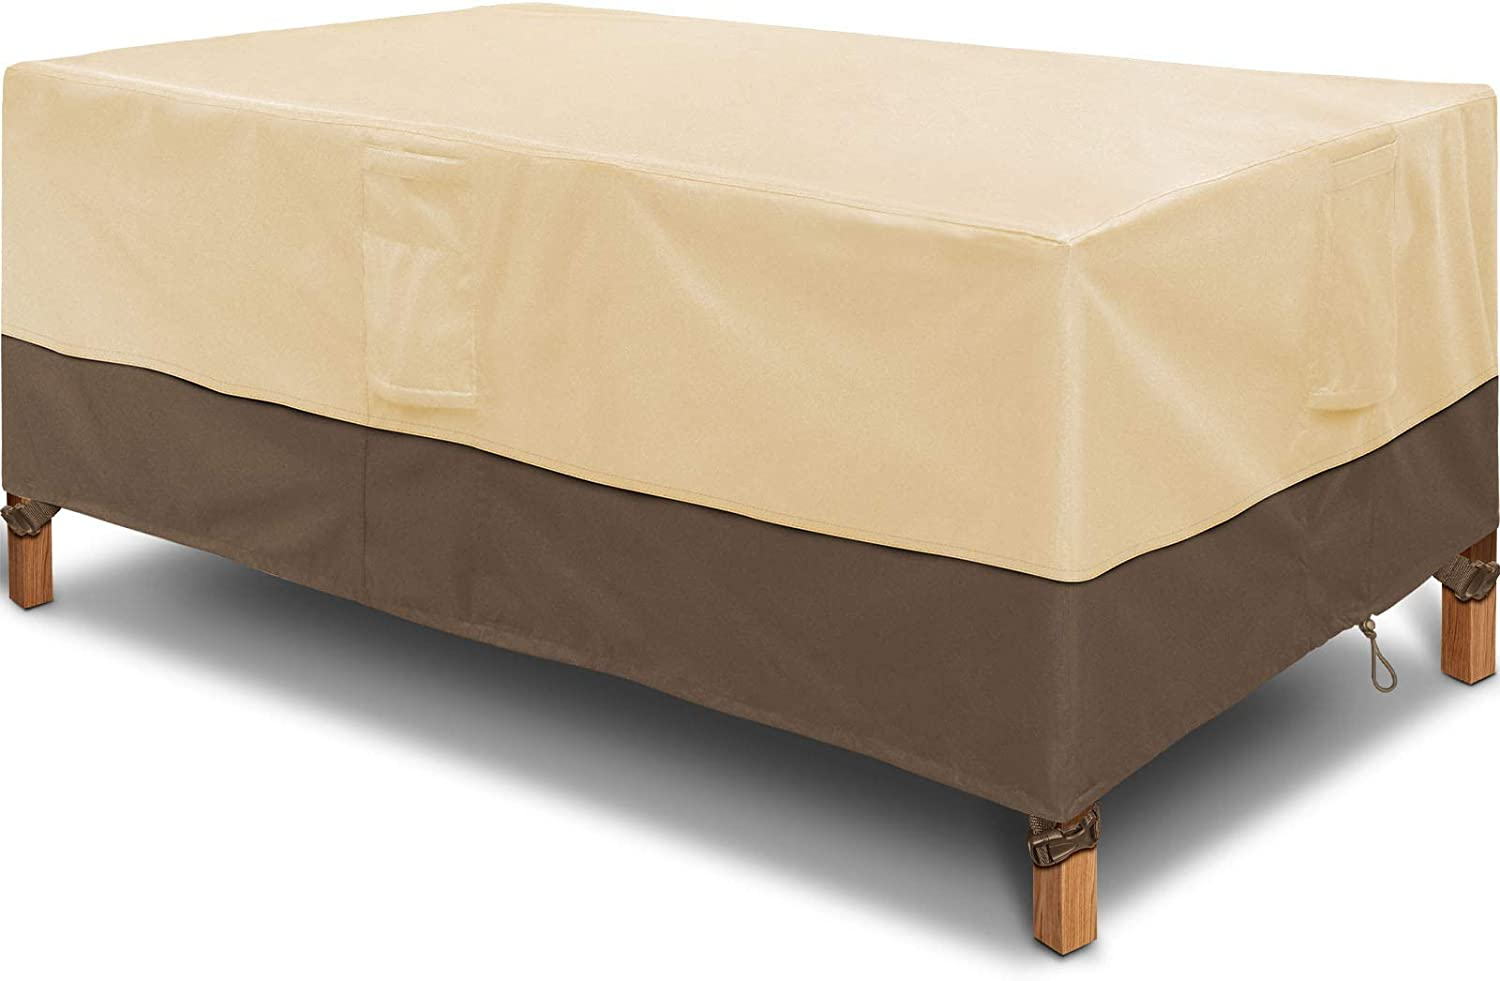 Kikcoin Rectangular/Oval Patio Table Cover, Heavy Duty Waterproof Outdoor Lawn Patio Furniture Covers 72